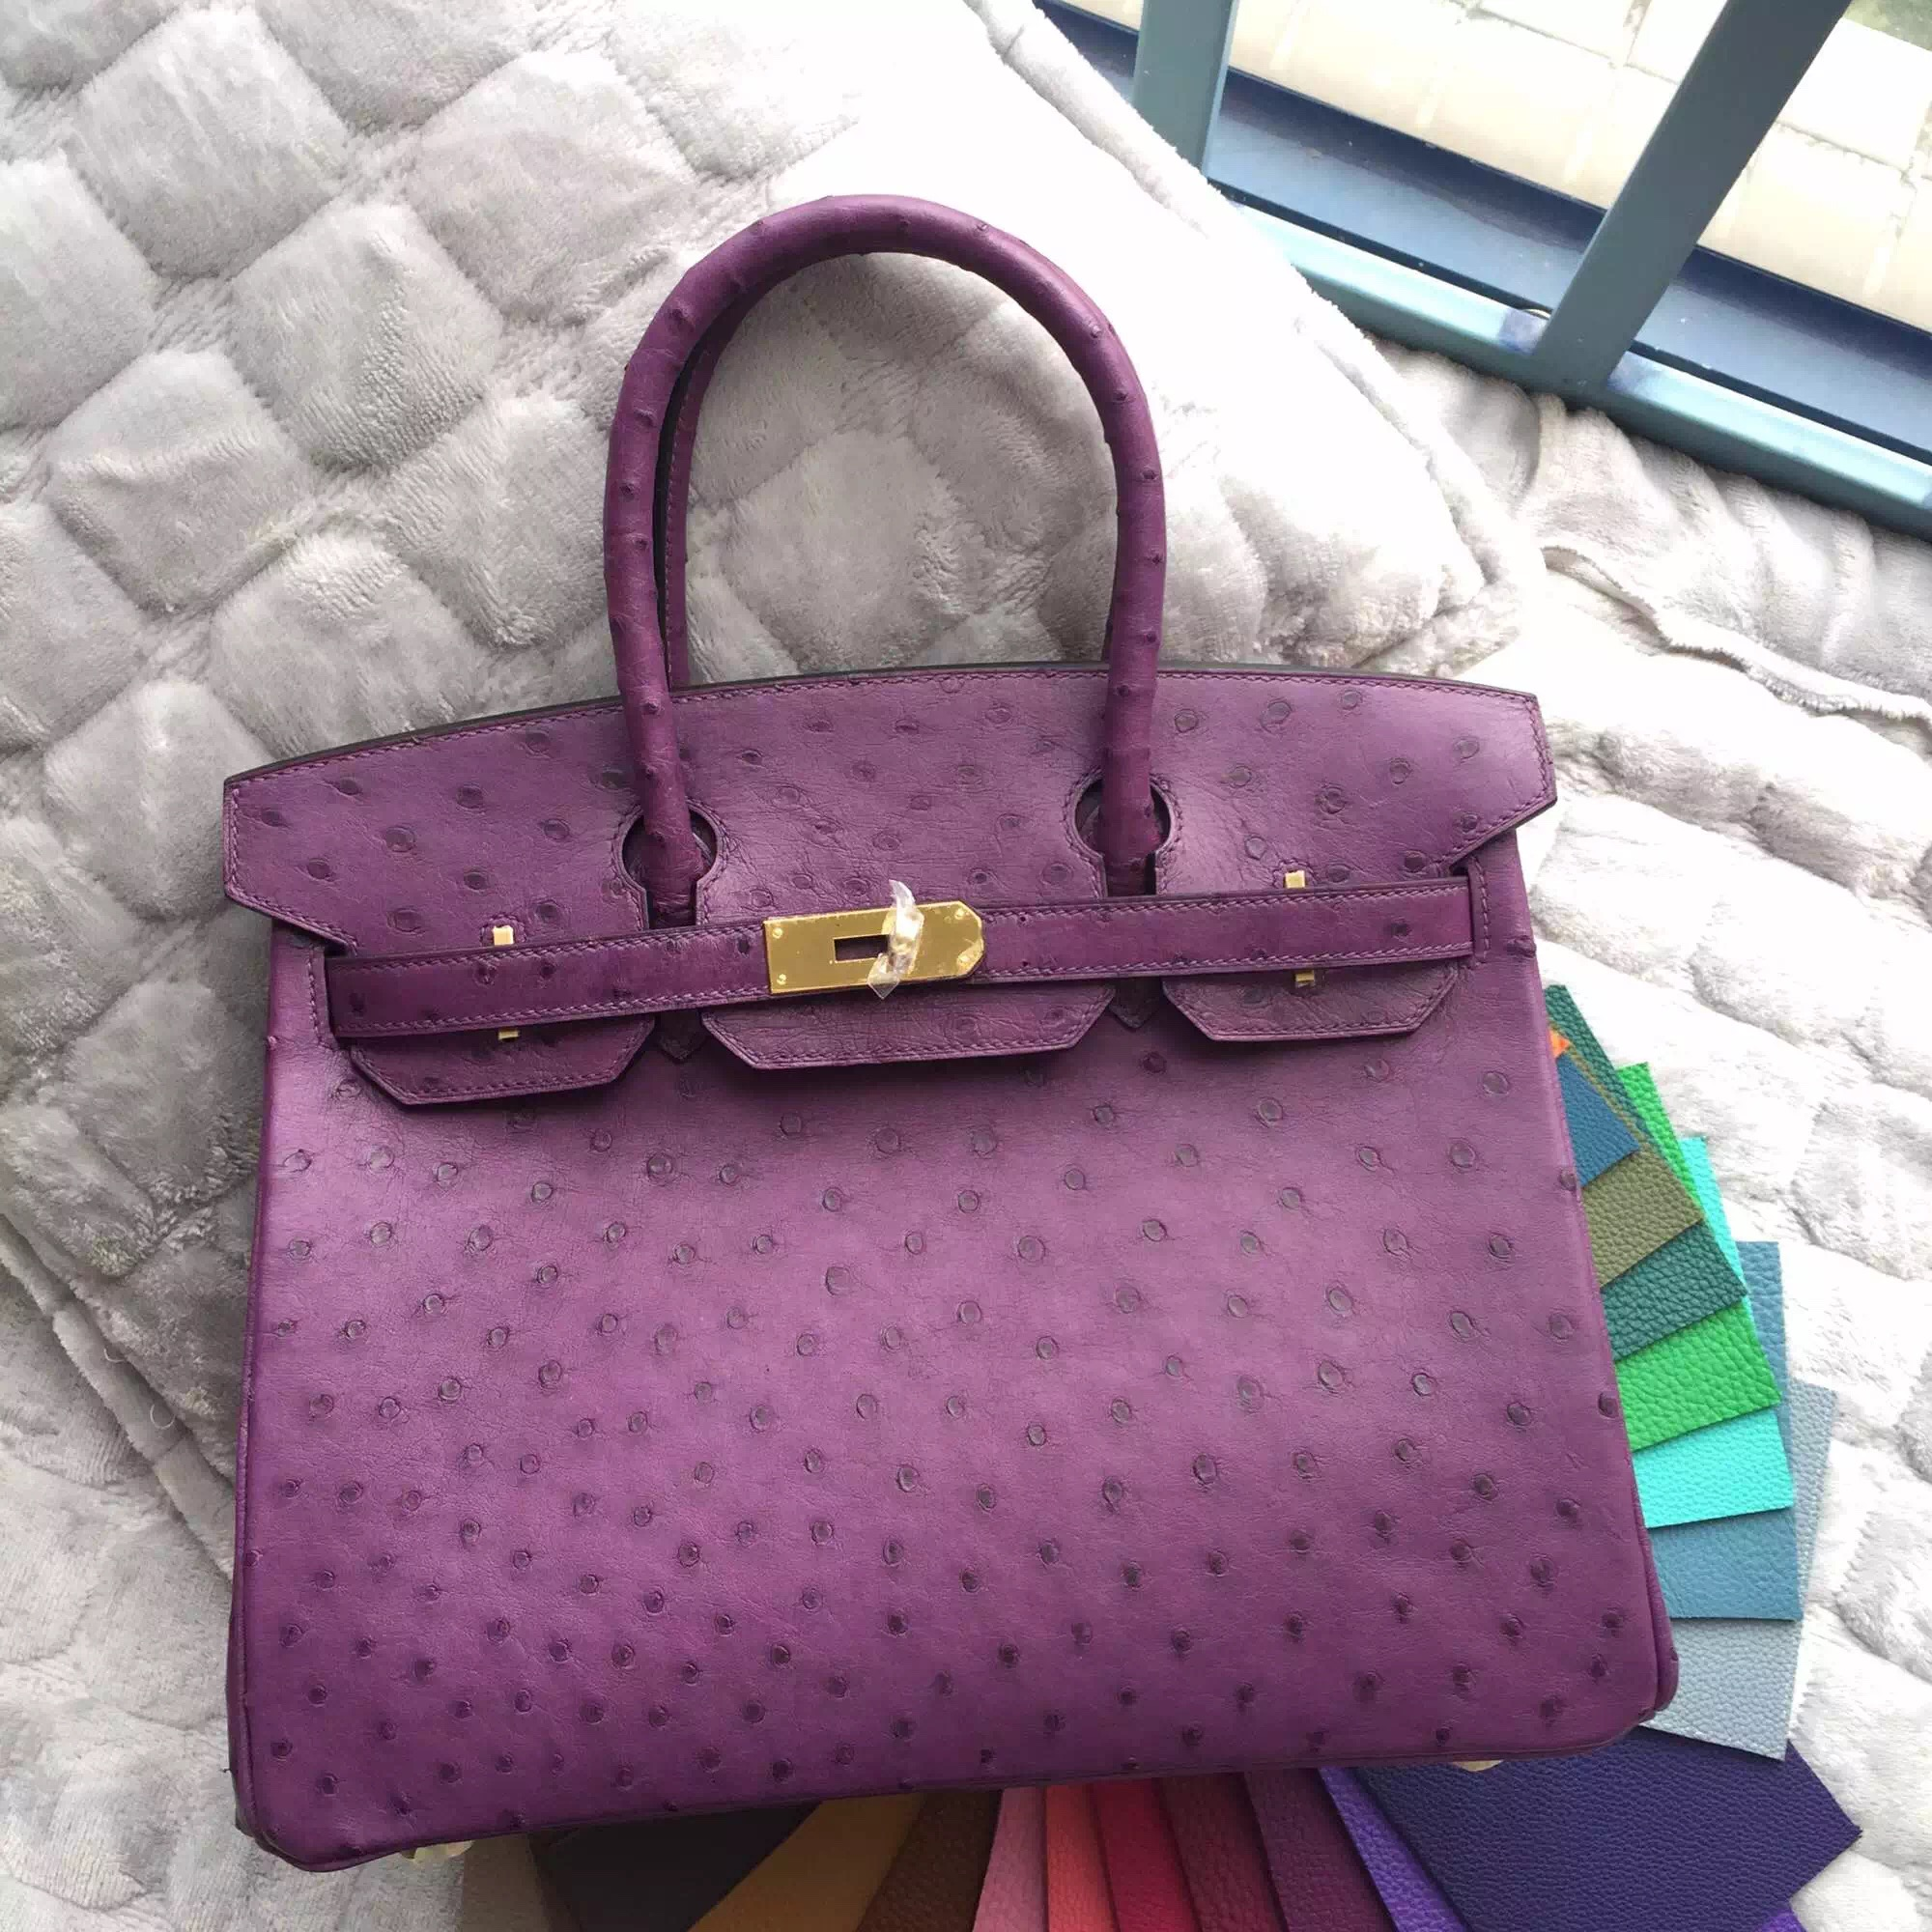 Elegant Hermes Birkin 30CM in 5C Violet Purple Ostrich Leather Handbag